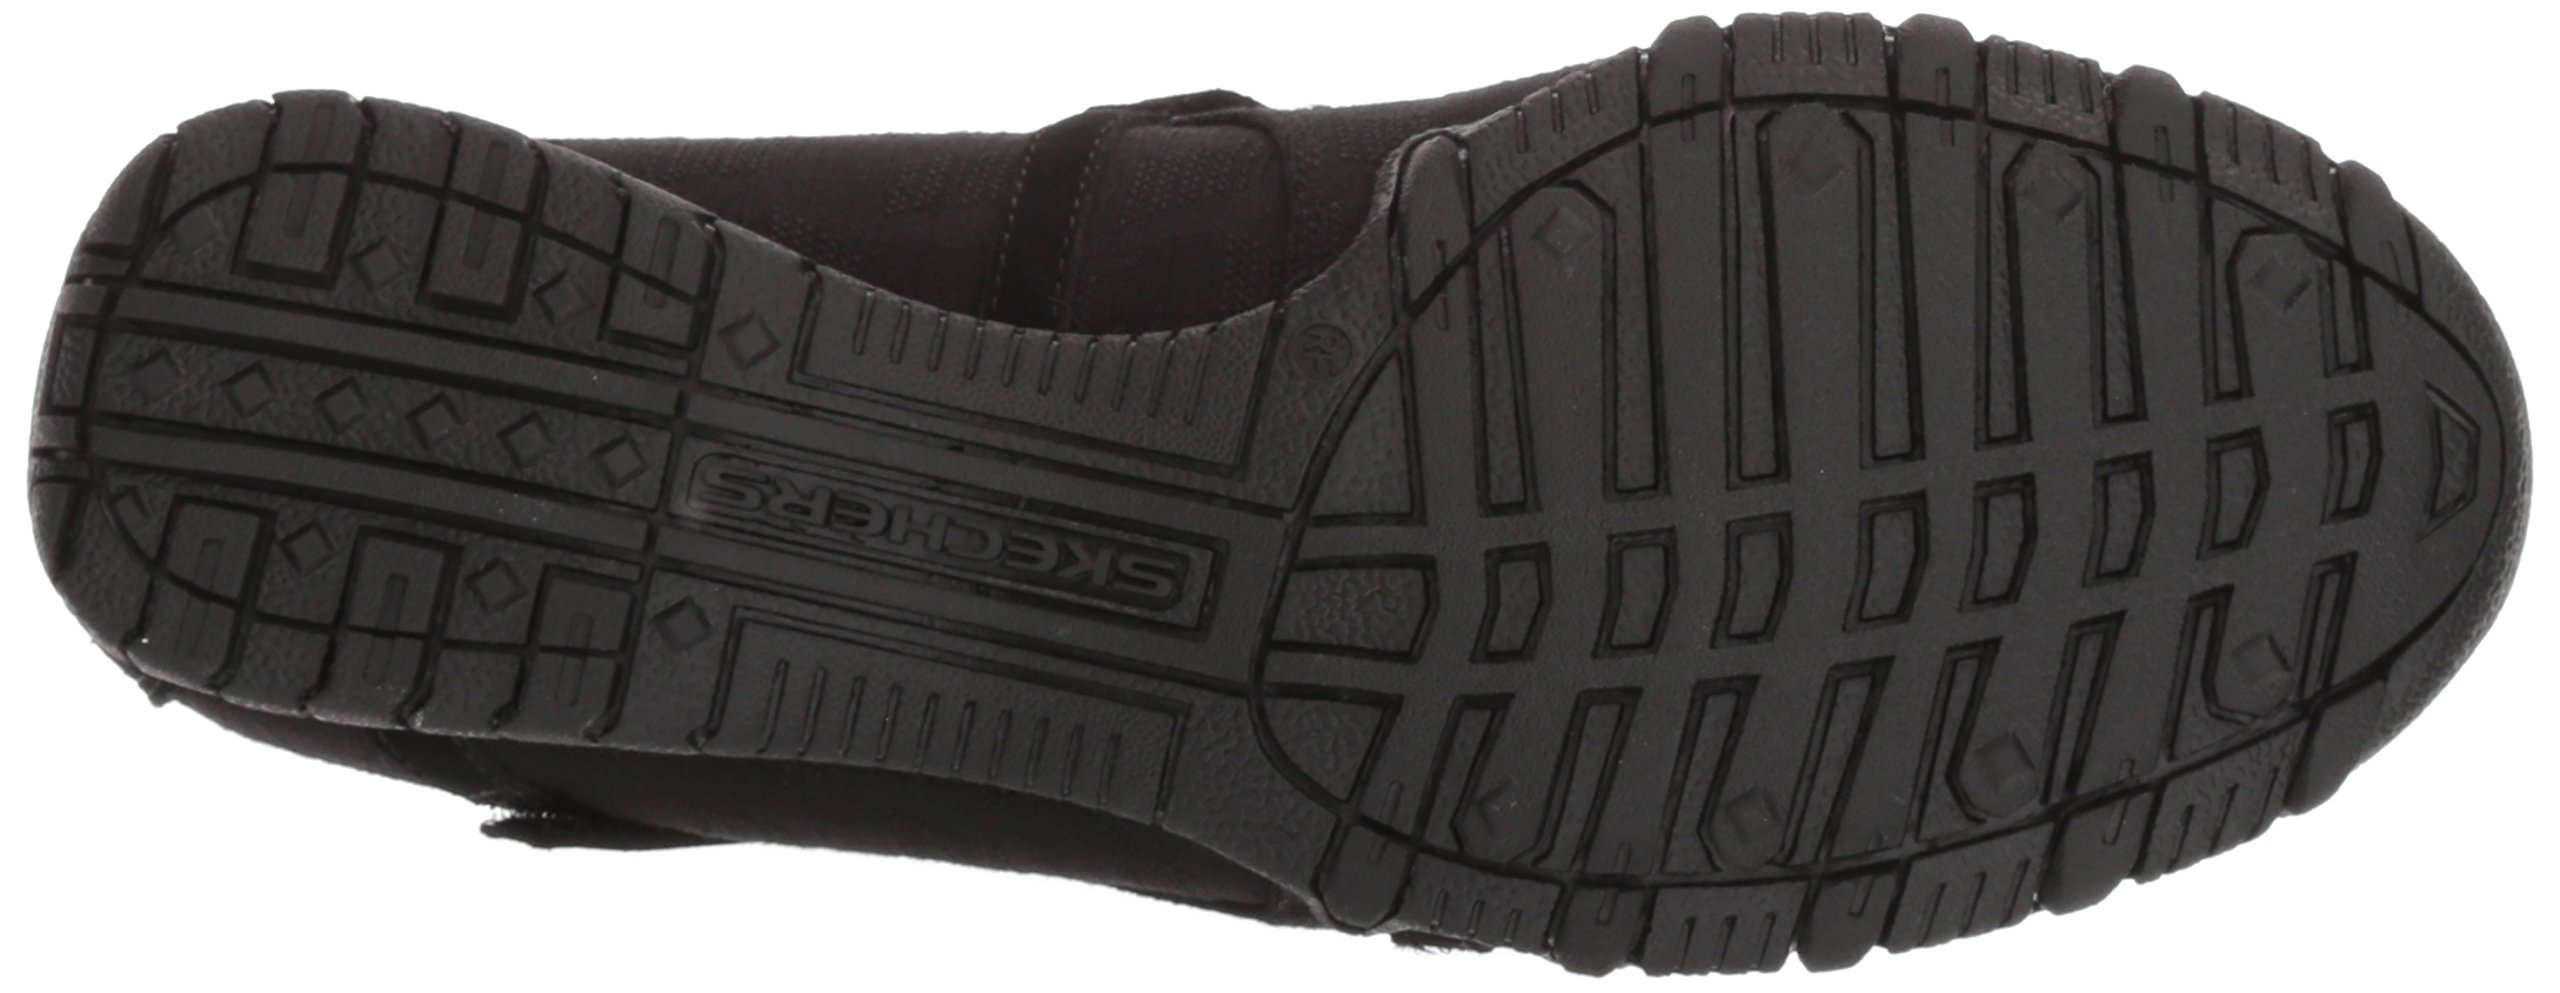 Skechers Women's Bikers -Fiesta Mary Jane Flat,7 M US,Black by Skechers (Image #3)